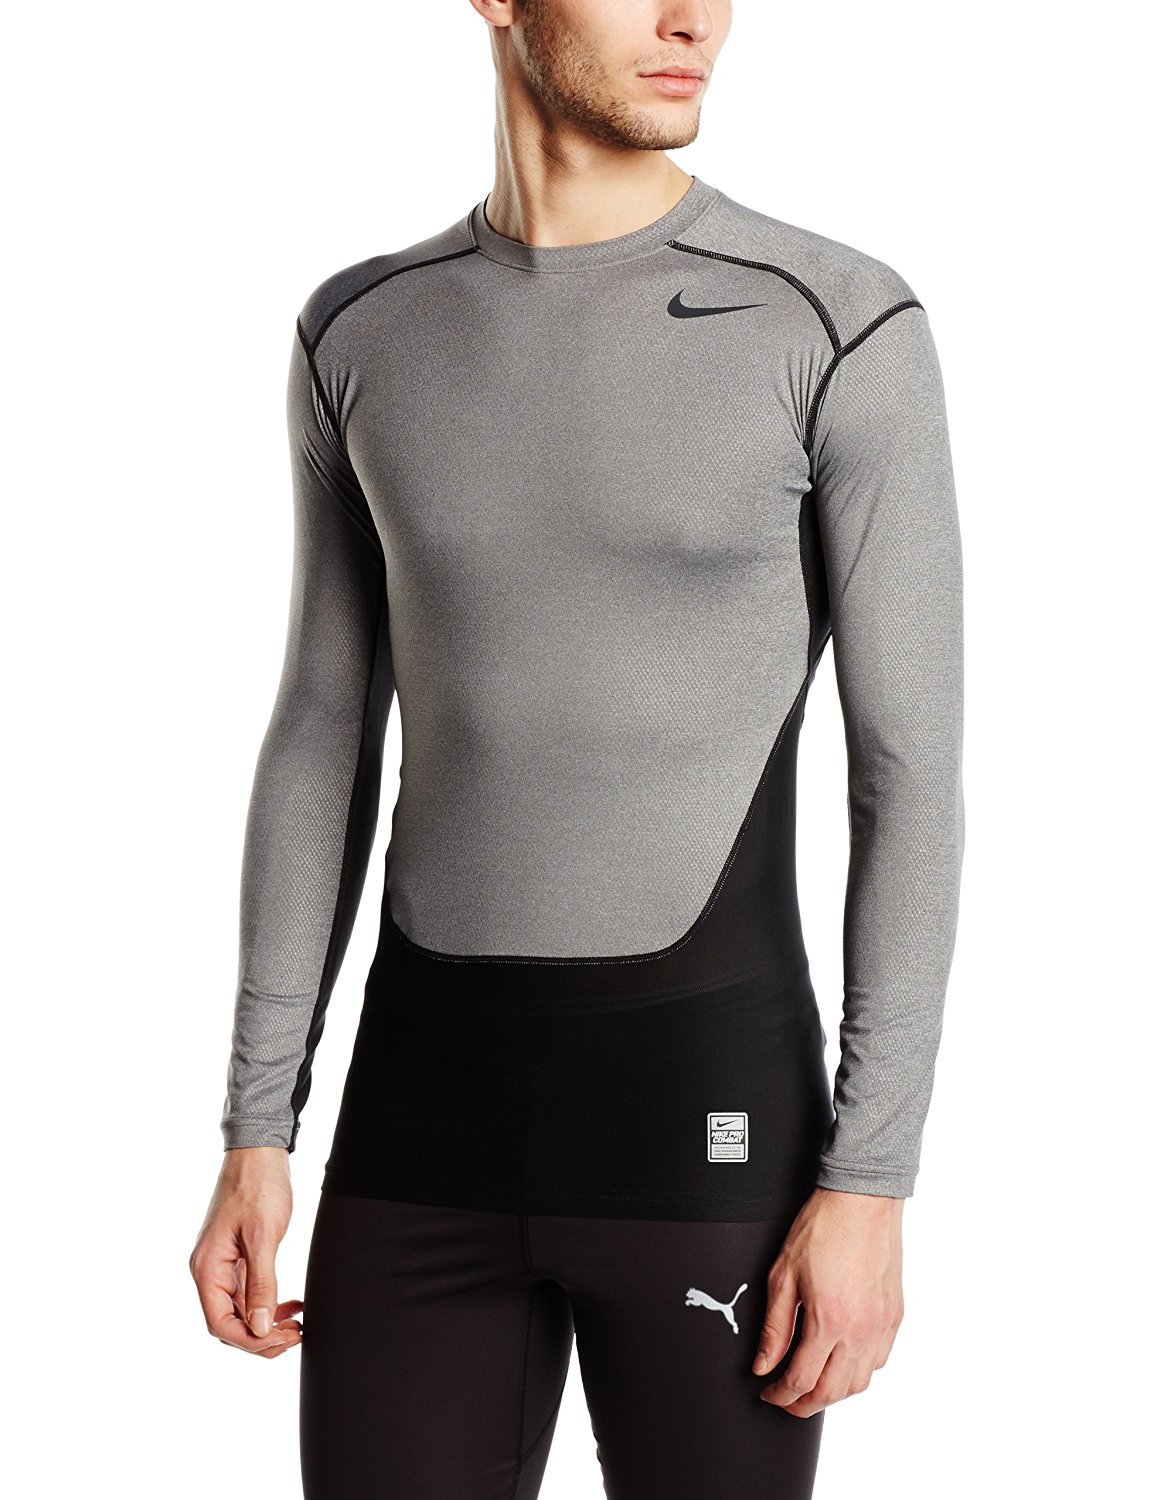 Nike Pro Combat Hypercool Compression LS Top (Carbon Heather)